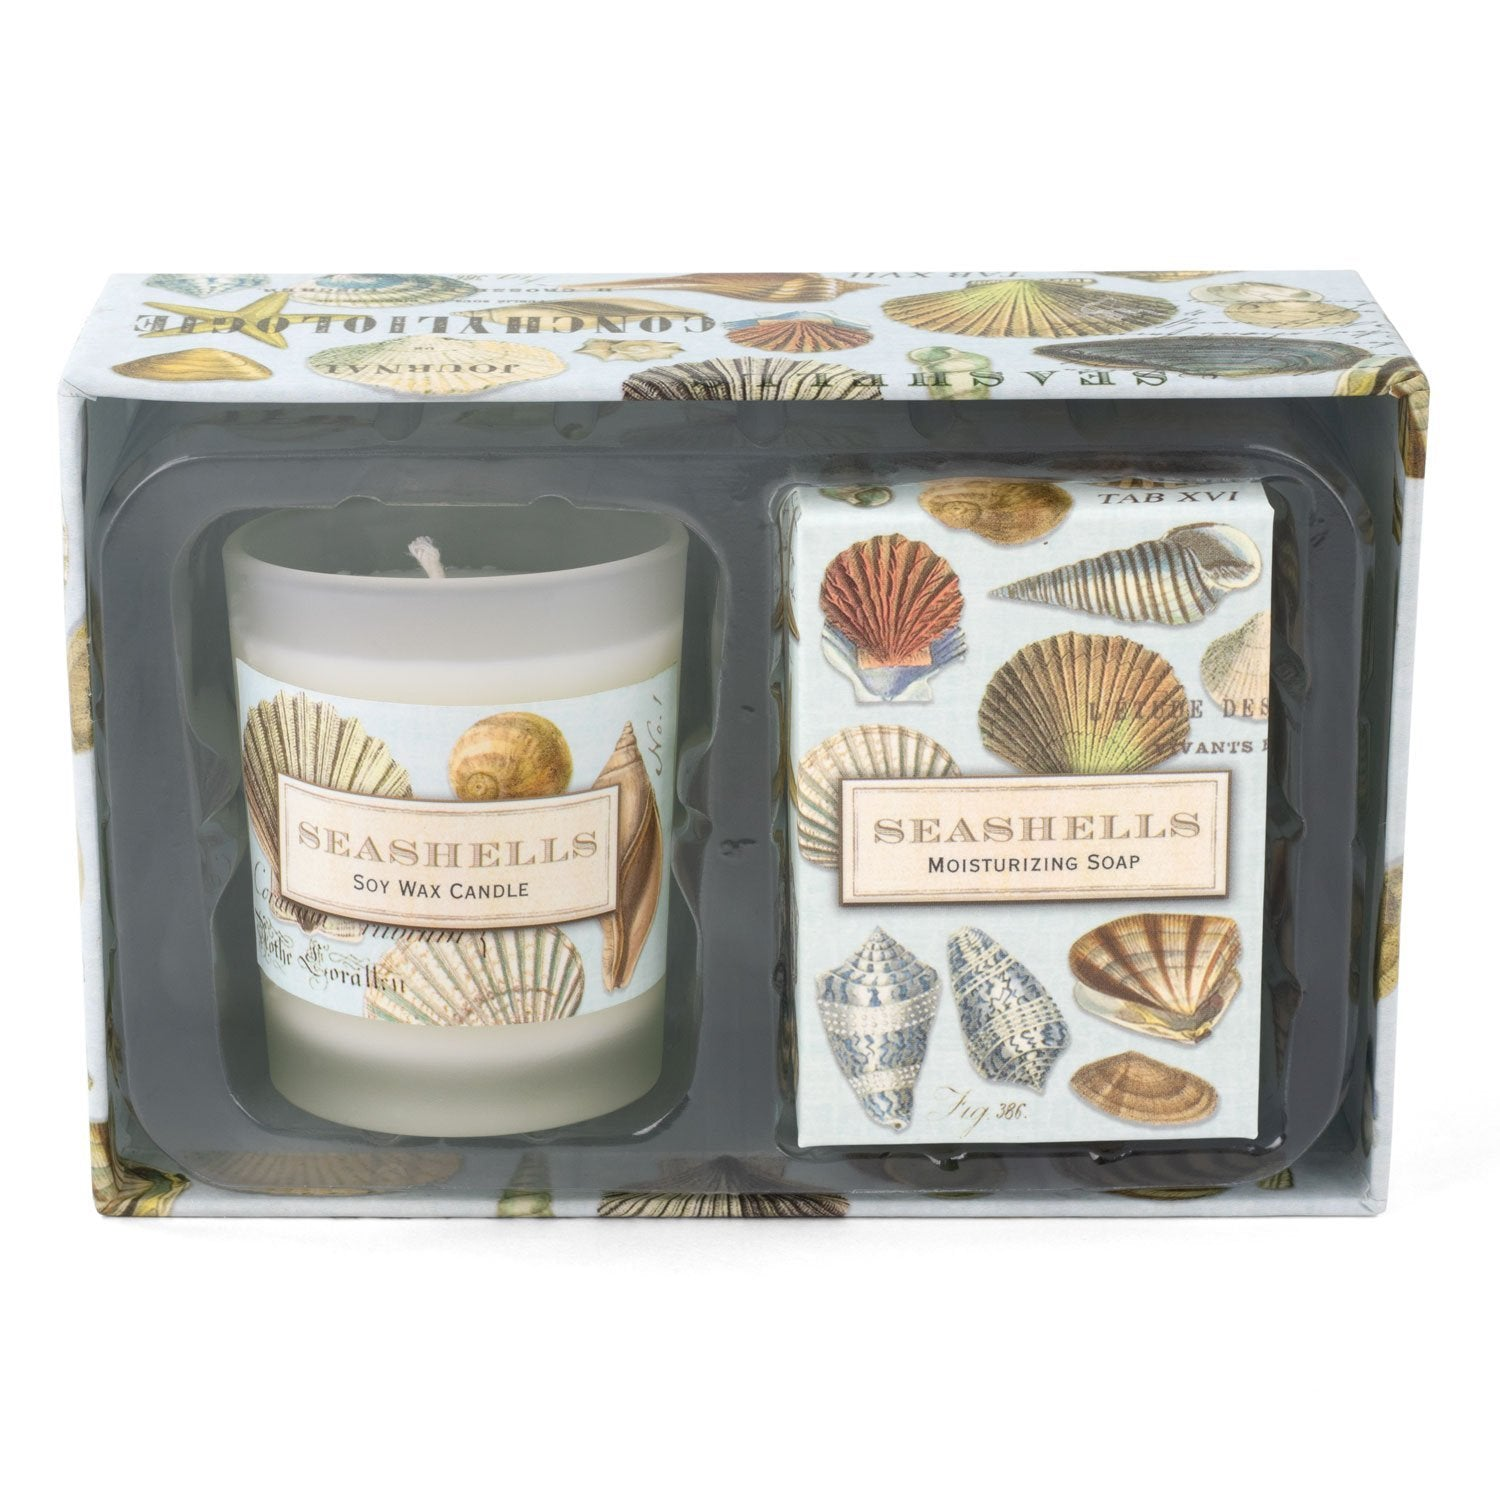 SEASHELLS CANDLE AND SOAP GIFT SET - Molly's! A Chic and Unique Boutique